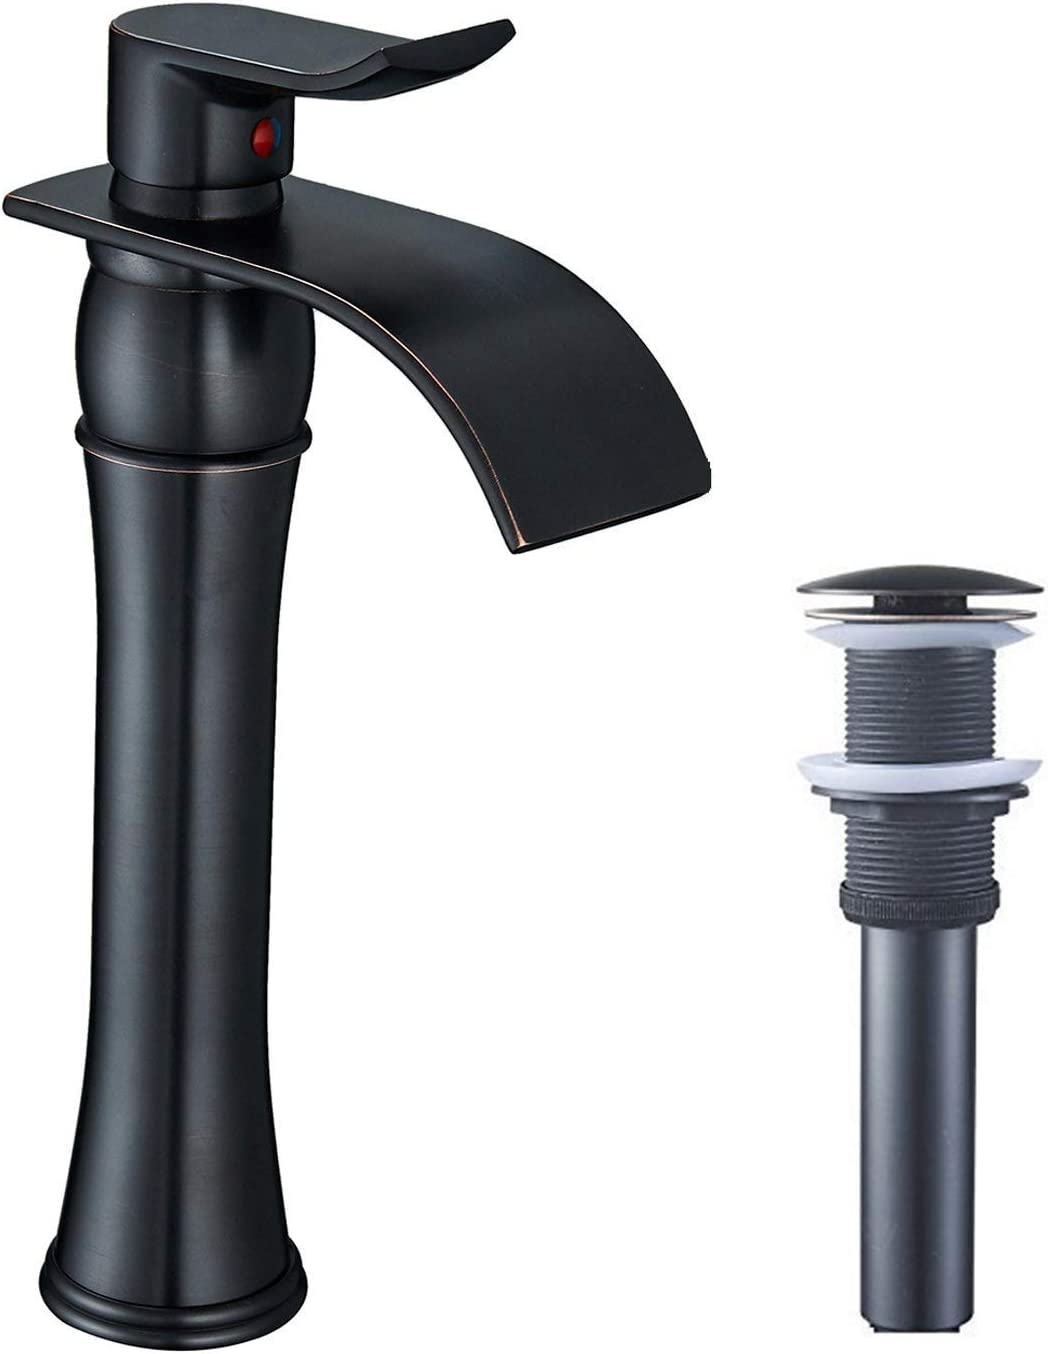 BWE Vessel Sink Faucet Waterfall Spout Oil Rubbed Bronze Commercial Single Handle One Hole Bathroom Deck Mount With Matching Pop Up Drain Without Overflow